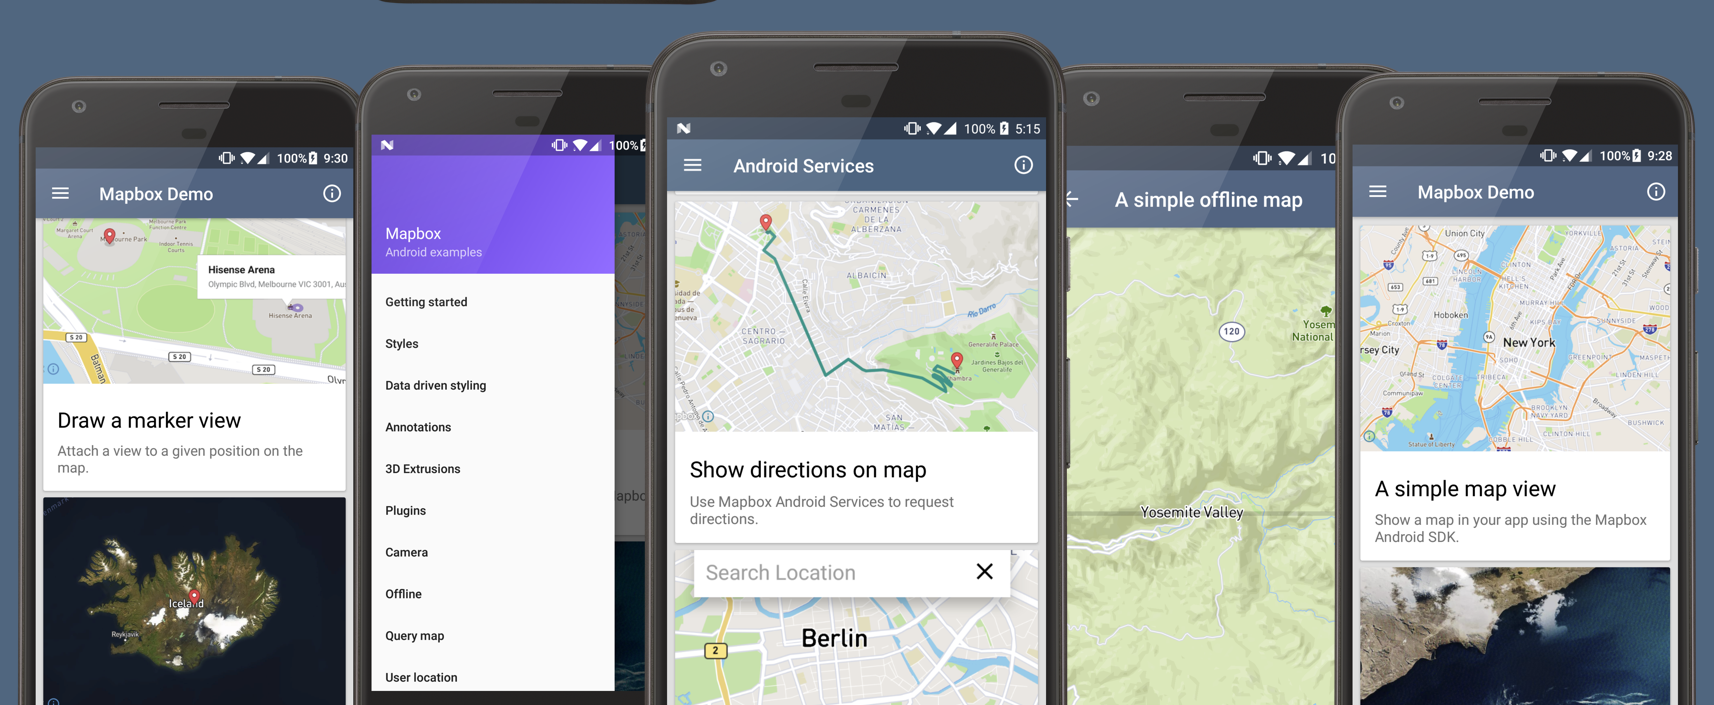 mapbox / mapbox-android-demo Download